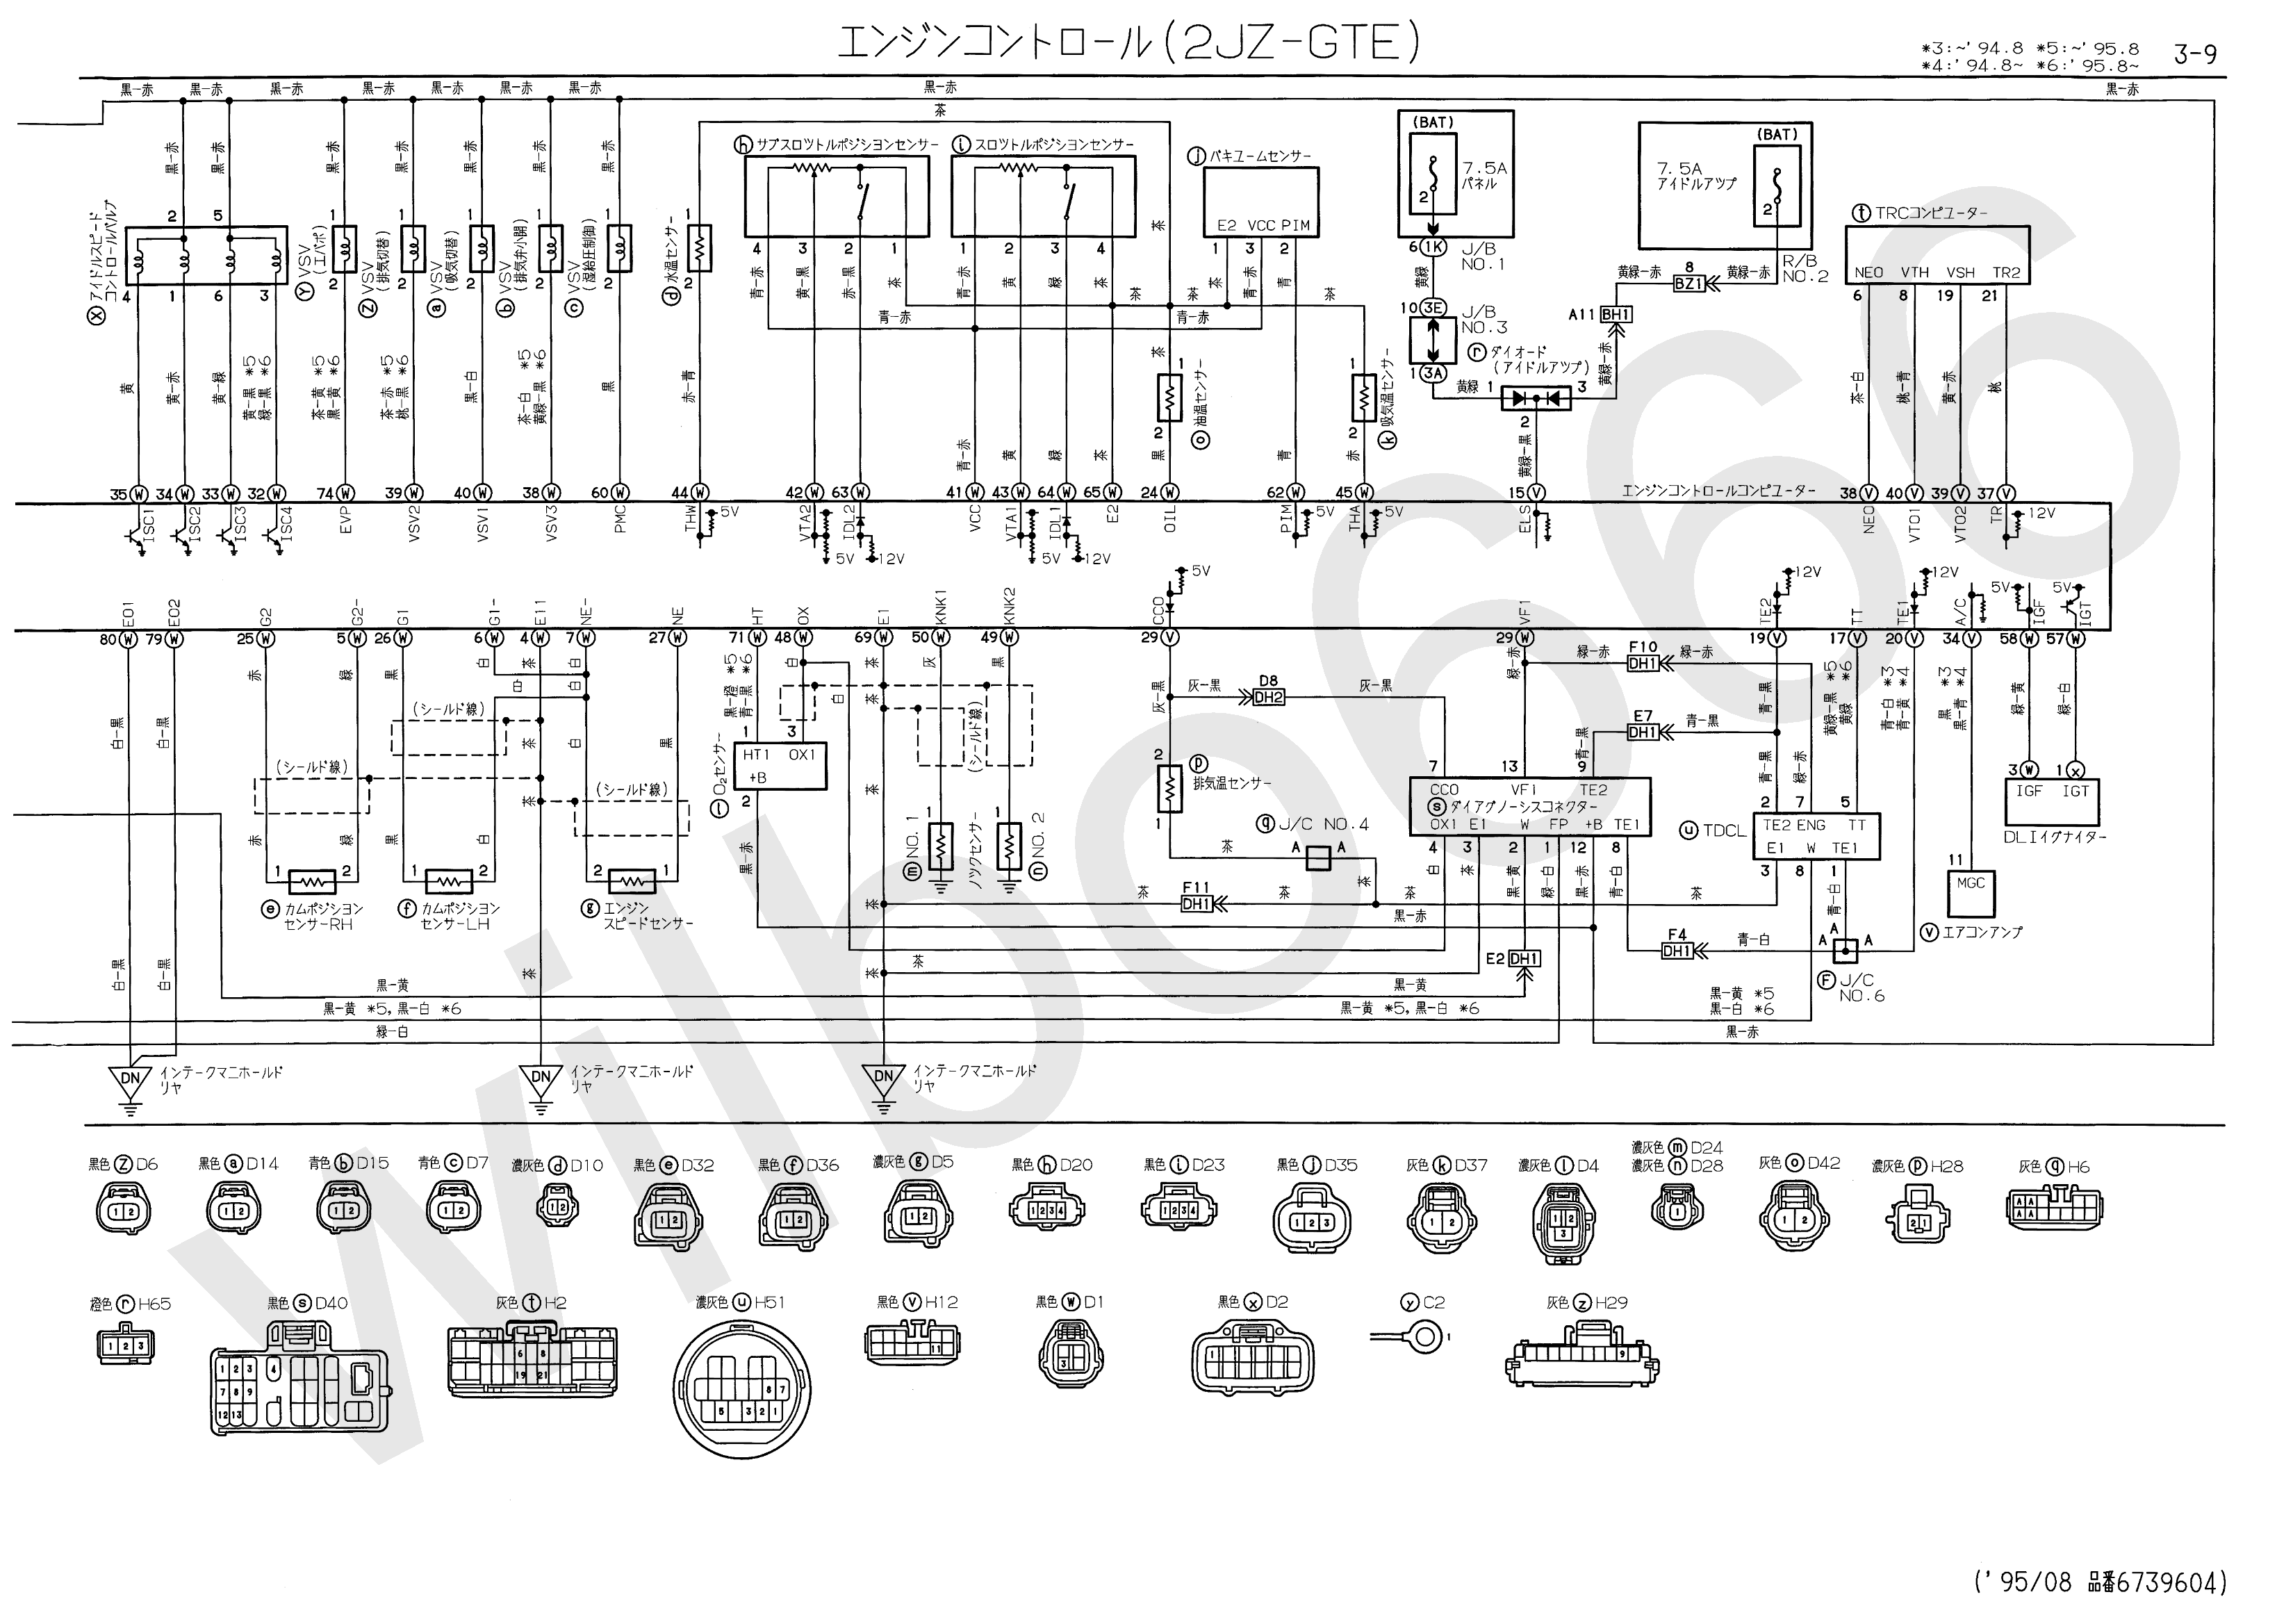 JZS14%23%2C+UZS14%23+Electrical+Wiring+Diagram+6739604+3 9 2jz wiring diagram wiring diagram ground symbol \u2022 wiring diagrams lexus is300 stereo wiring diagram at mifinder.co